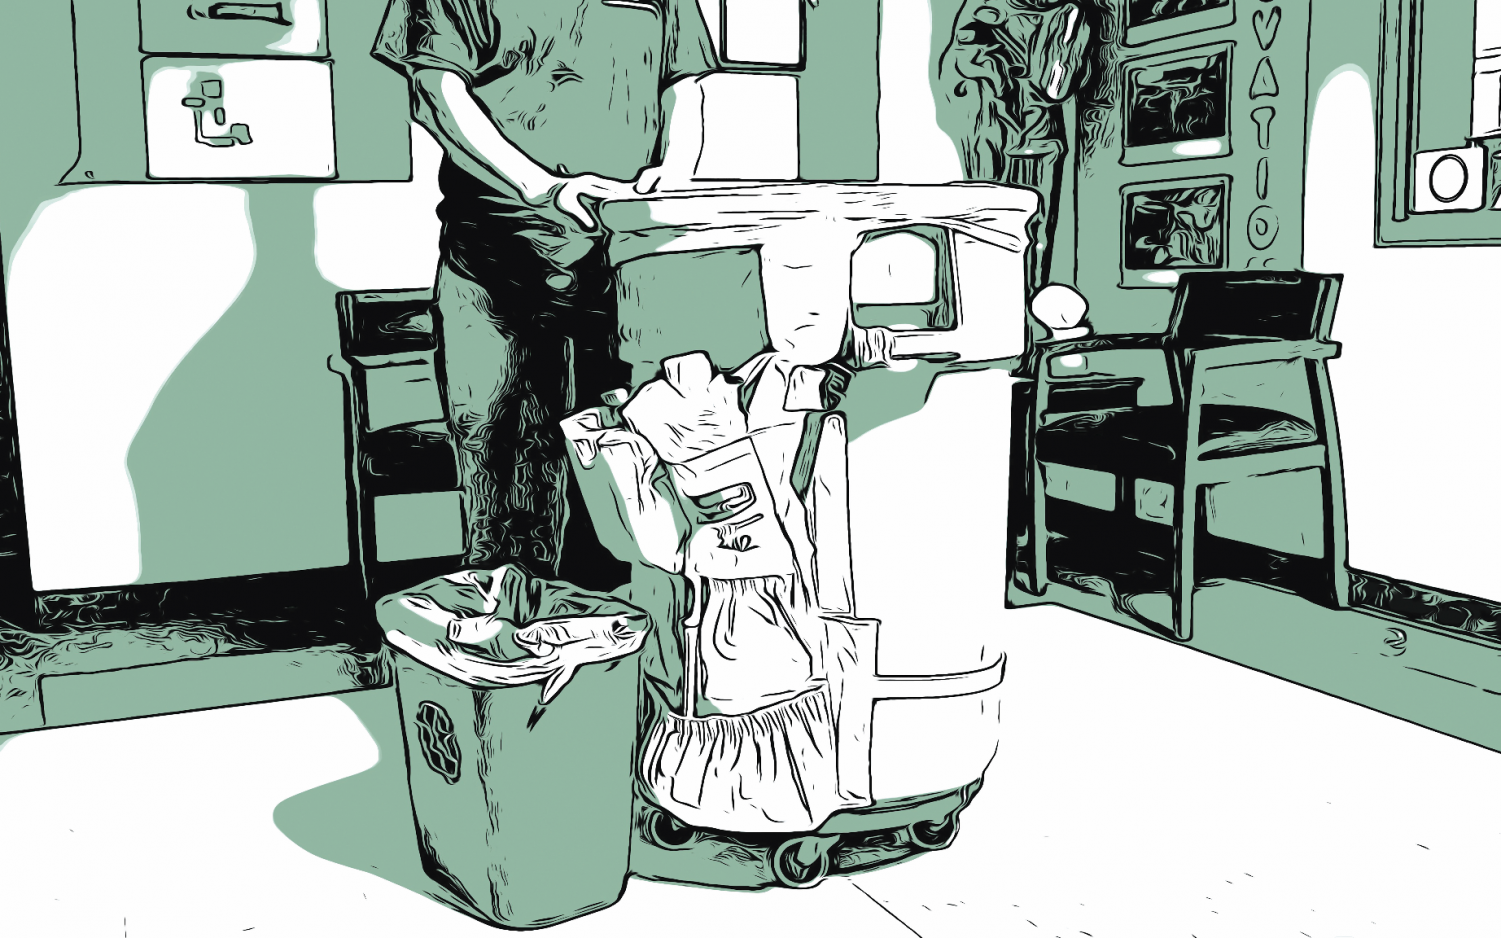 The contracted night custodial staff throws out the waste from  the small recycling bins into the large trash cans sent to landfills after school. Recycling at school, and all over the  world, is facing environmental challenges and social pushback.